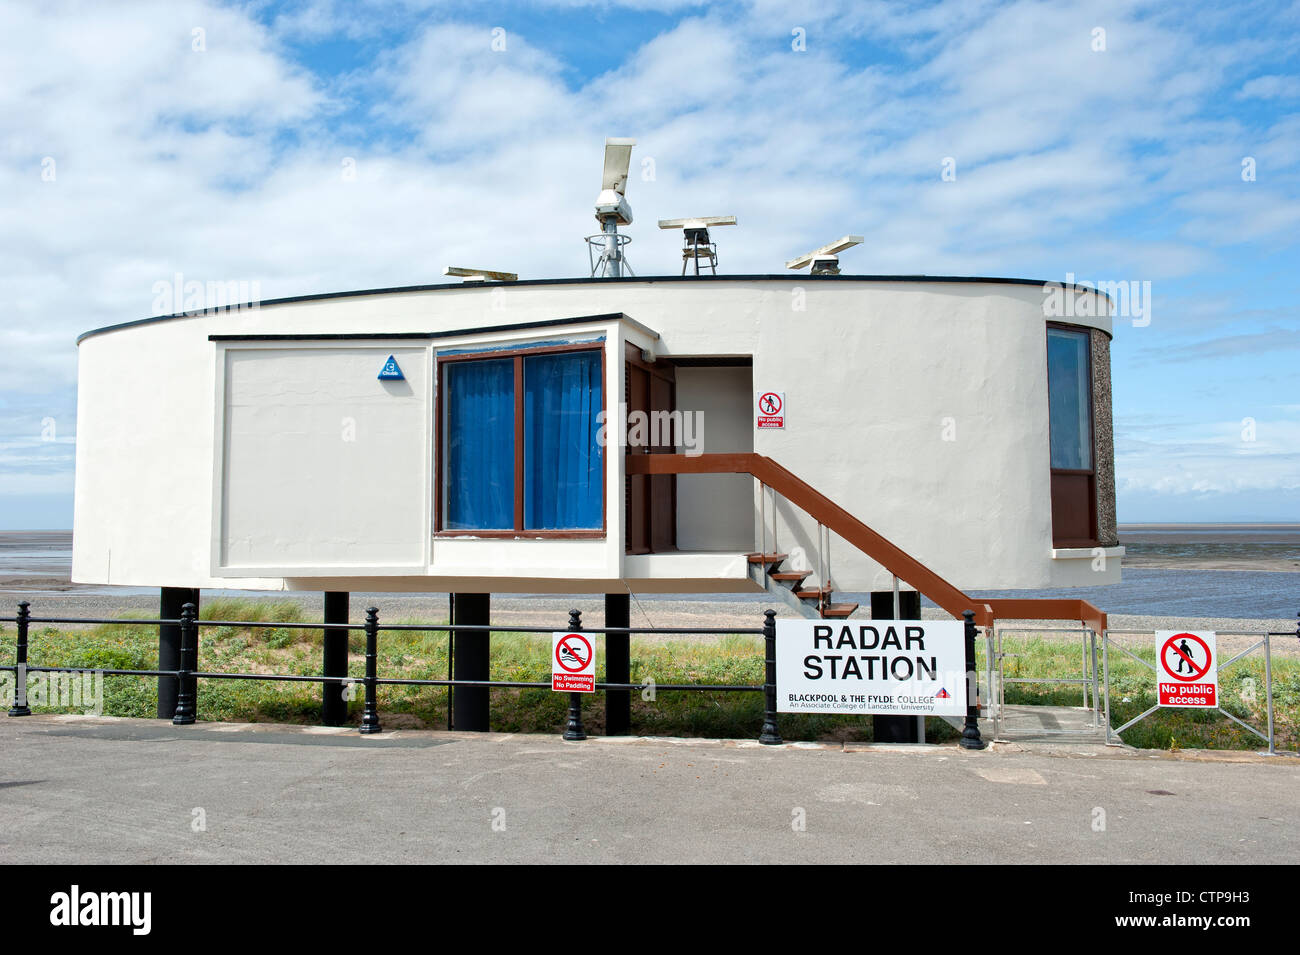 Radar Station on the seafront in Fleetwood, Lancashire - Stock Image